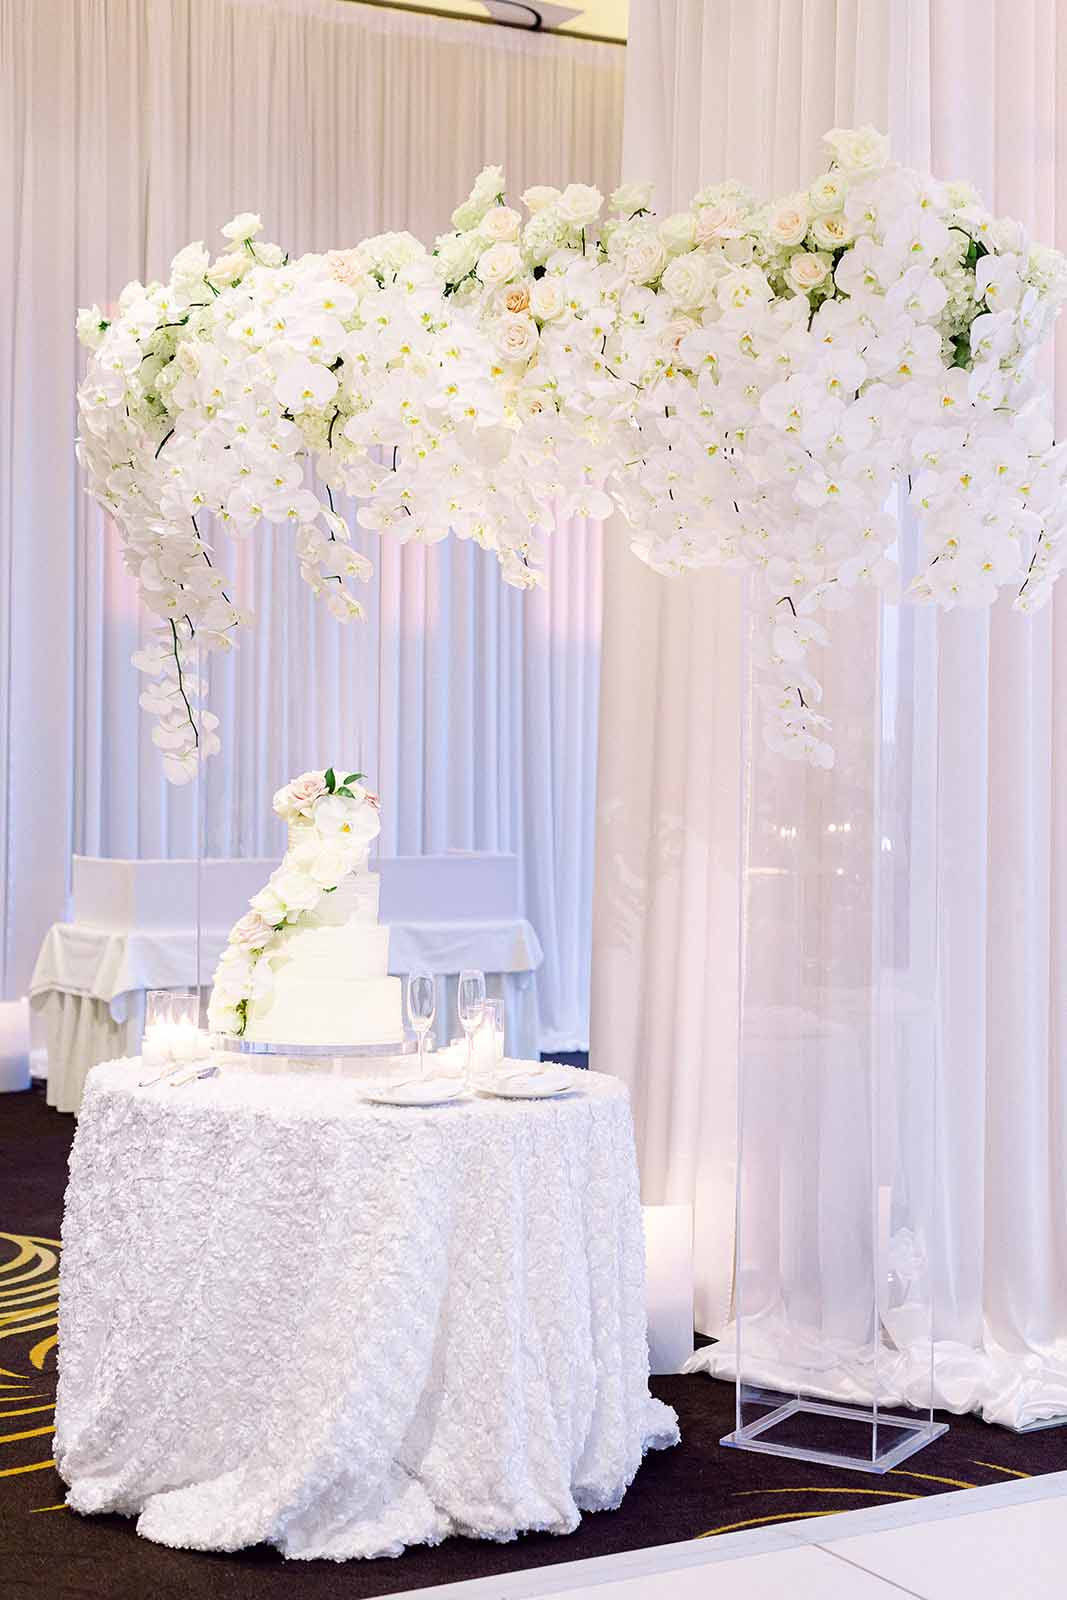 White tired wedding cake with waterfall of fresh floral under a lucite arch covered in white orchids designed by Flora Nova Design Seattle